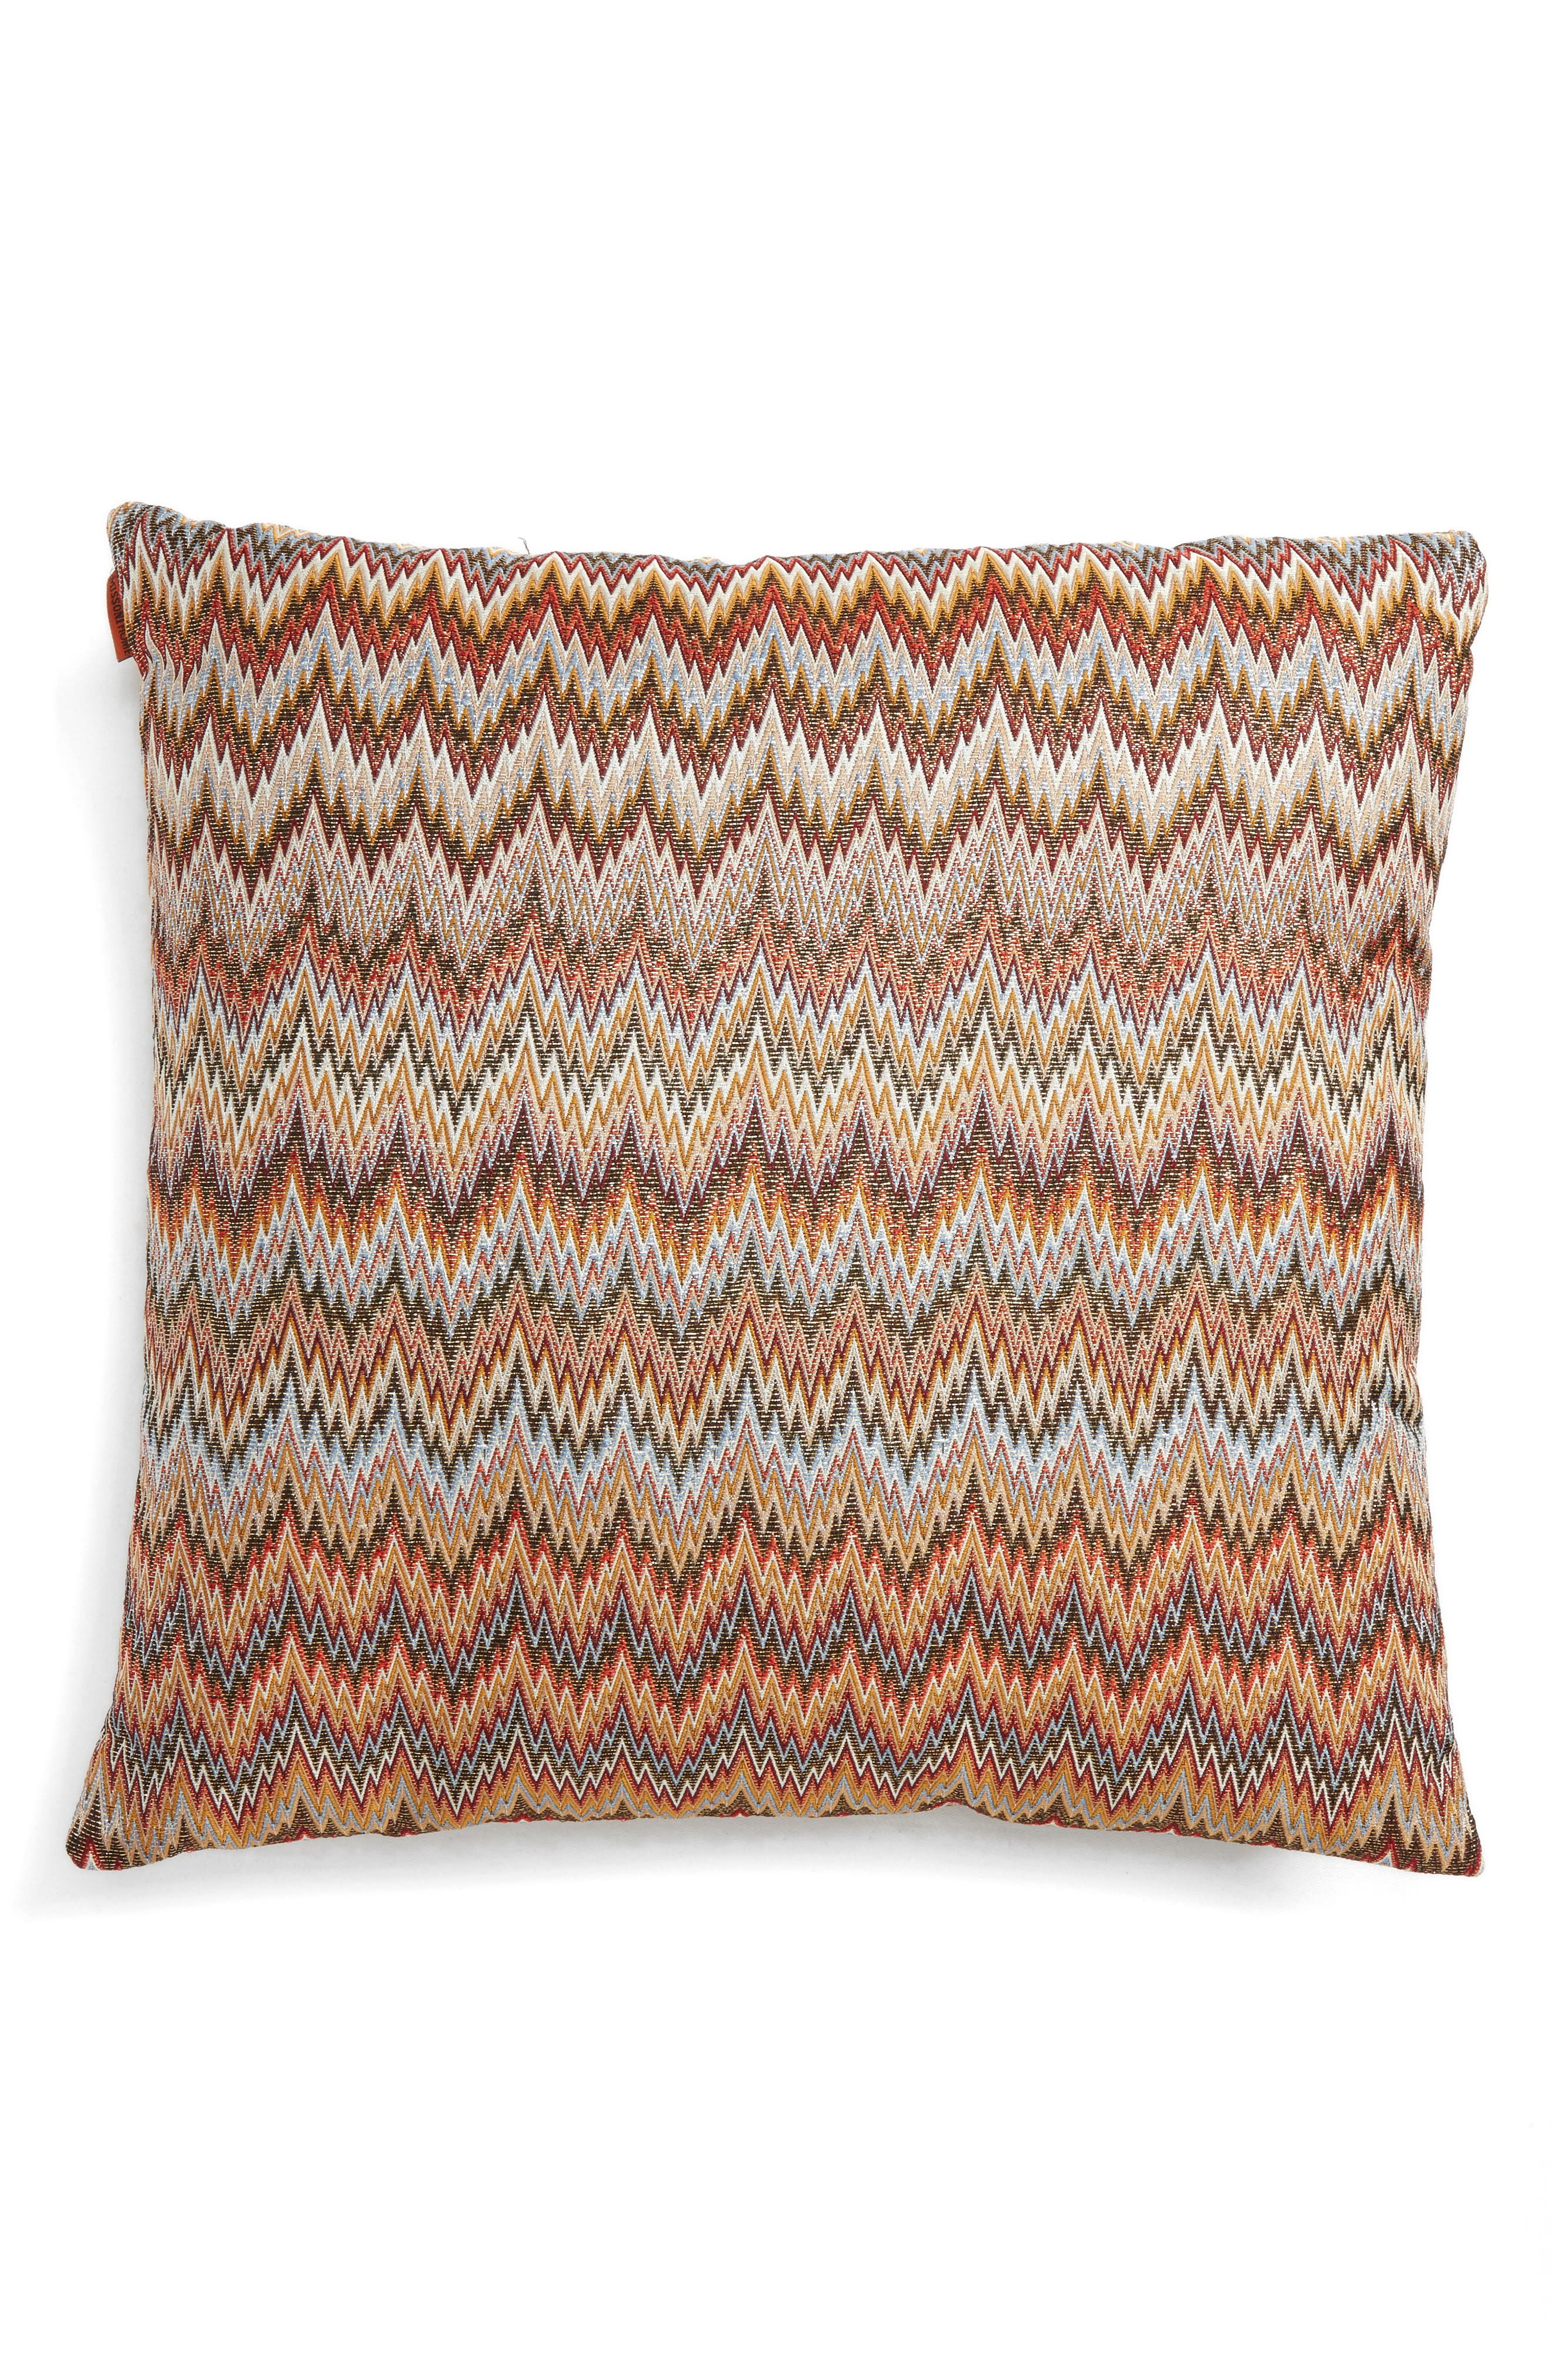 Plaisir Accent Pillow,                         Main,                         color, Multi Red